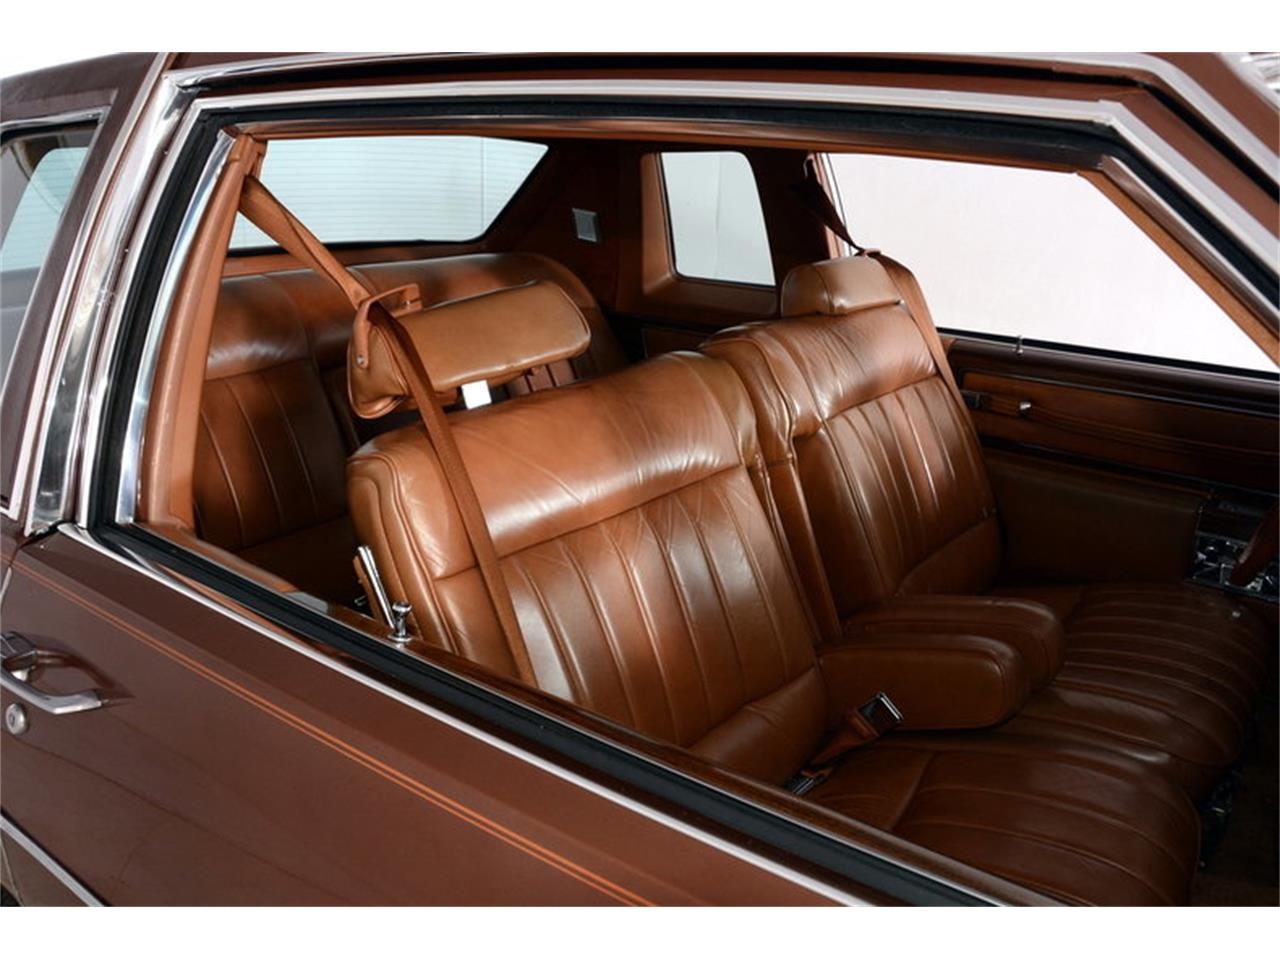 1978 Cadillac Coupe Deville For Sale Cc 1000873 Hub Cap Large Picture Of 78 Lga1